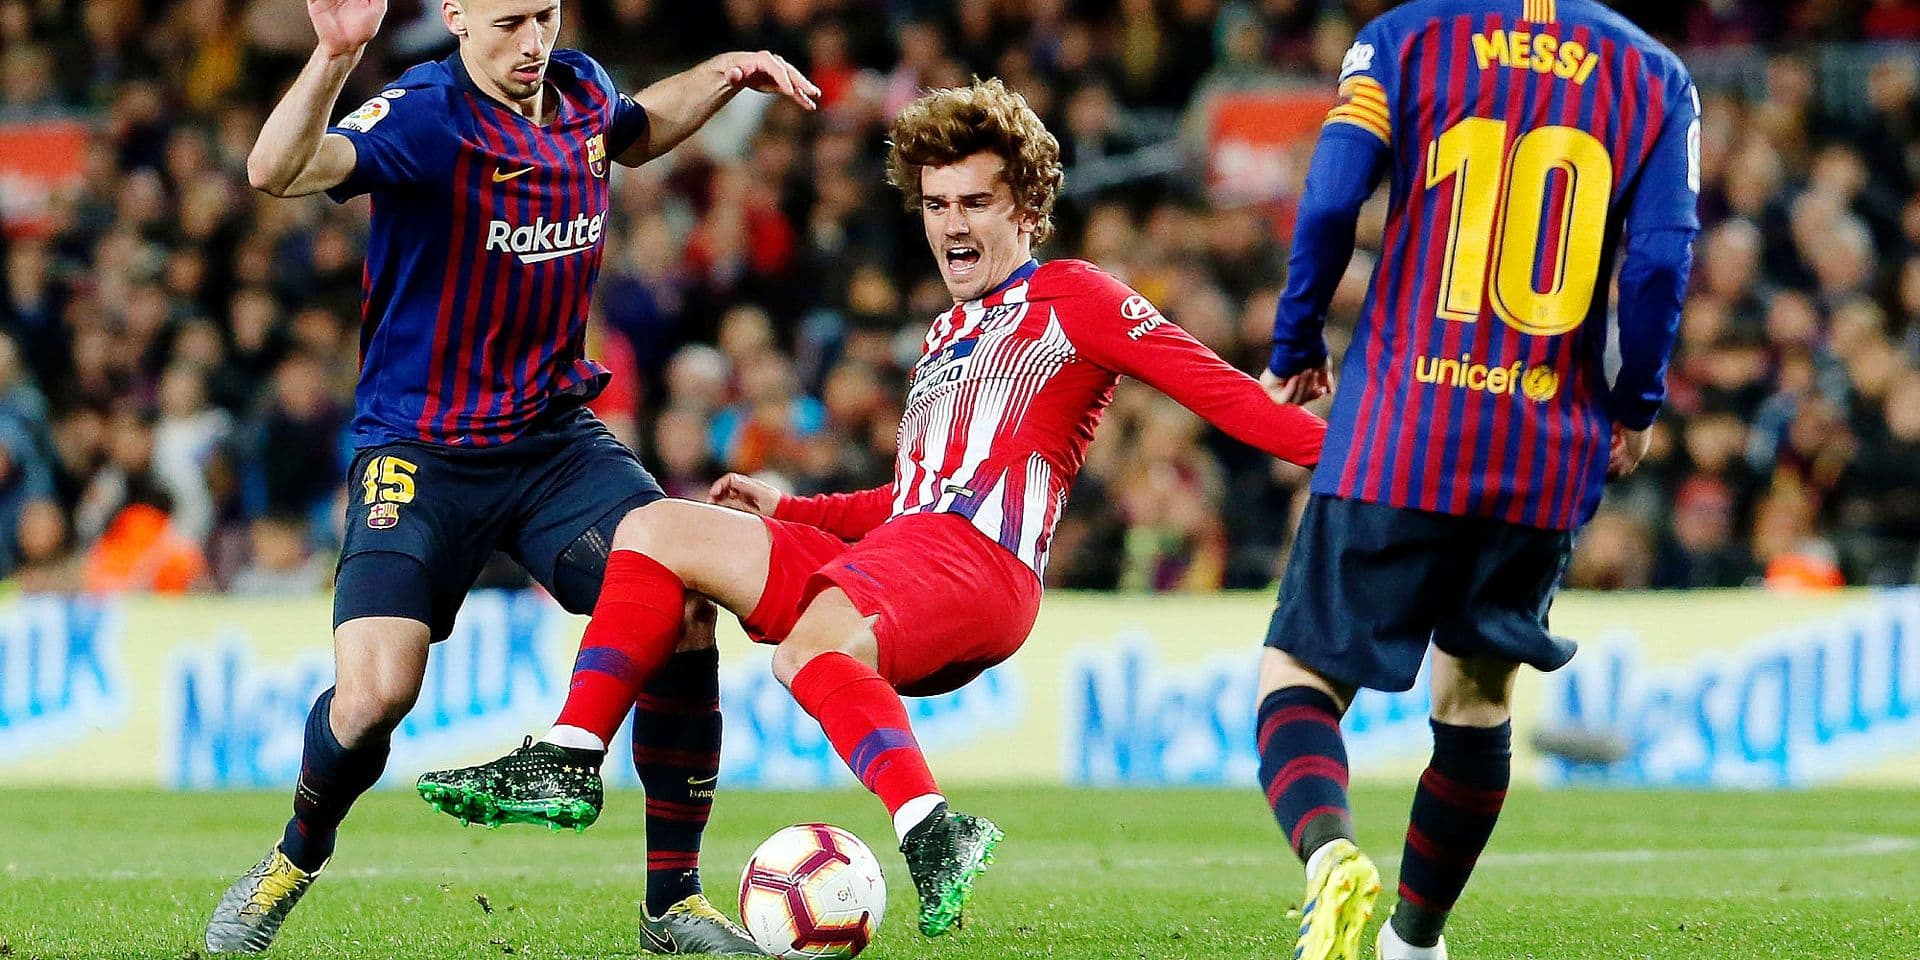 (FILES) In this file photo taken on April 06, 2019 Atletico Madrid's French forward Antoine Griezmann (C) vies with Barcelona's French defender Clement Lenglet (L) during the Spanish league football match between FC Barcelona and Club Atletico de Madrid at the Camp Nou stadium in Barcelona. - Antoine Griezmann has signed for Barcelona the club announced on July 12, 2019. (Photo by PAU BARRENA / AFP)